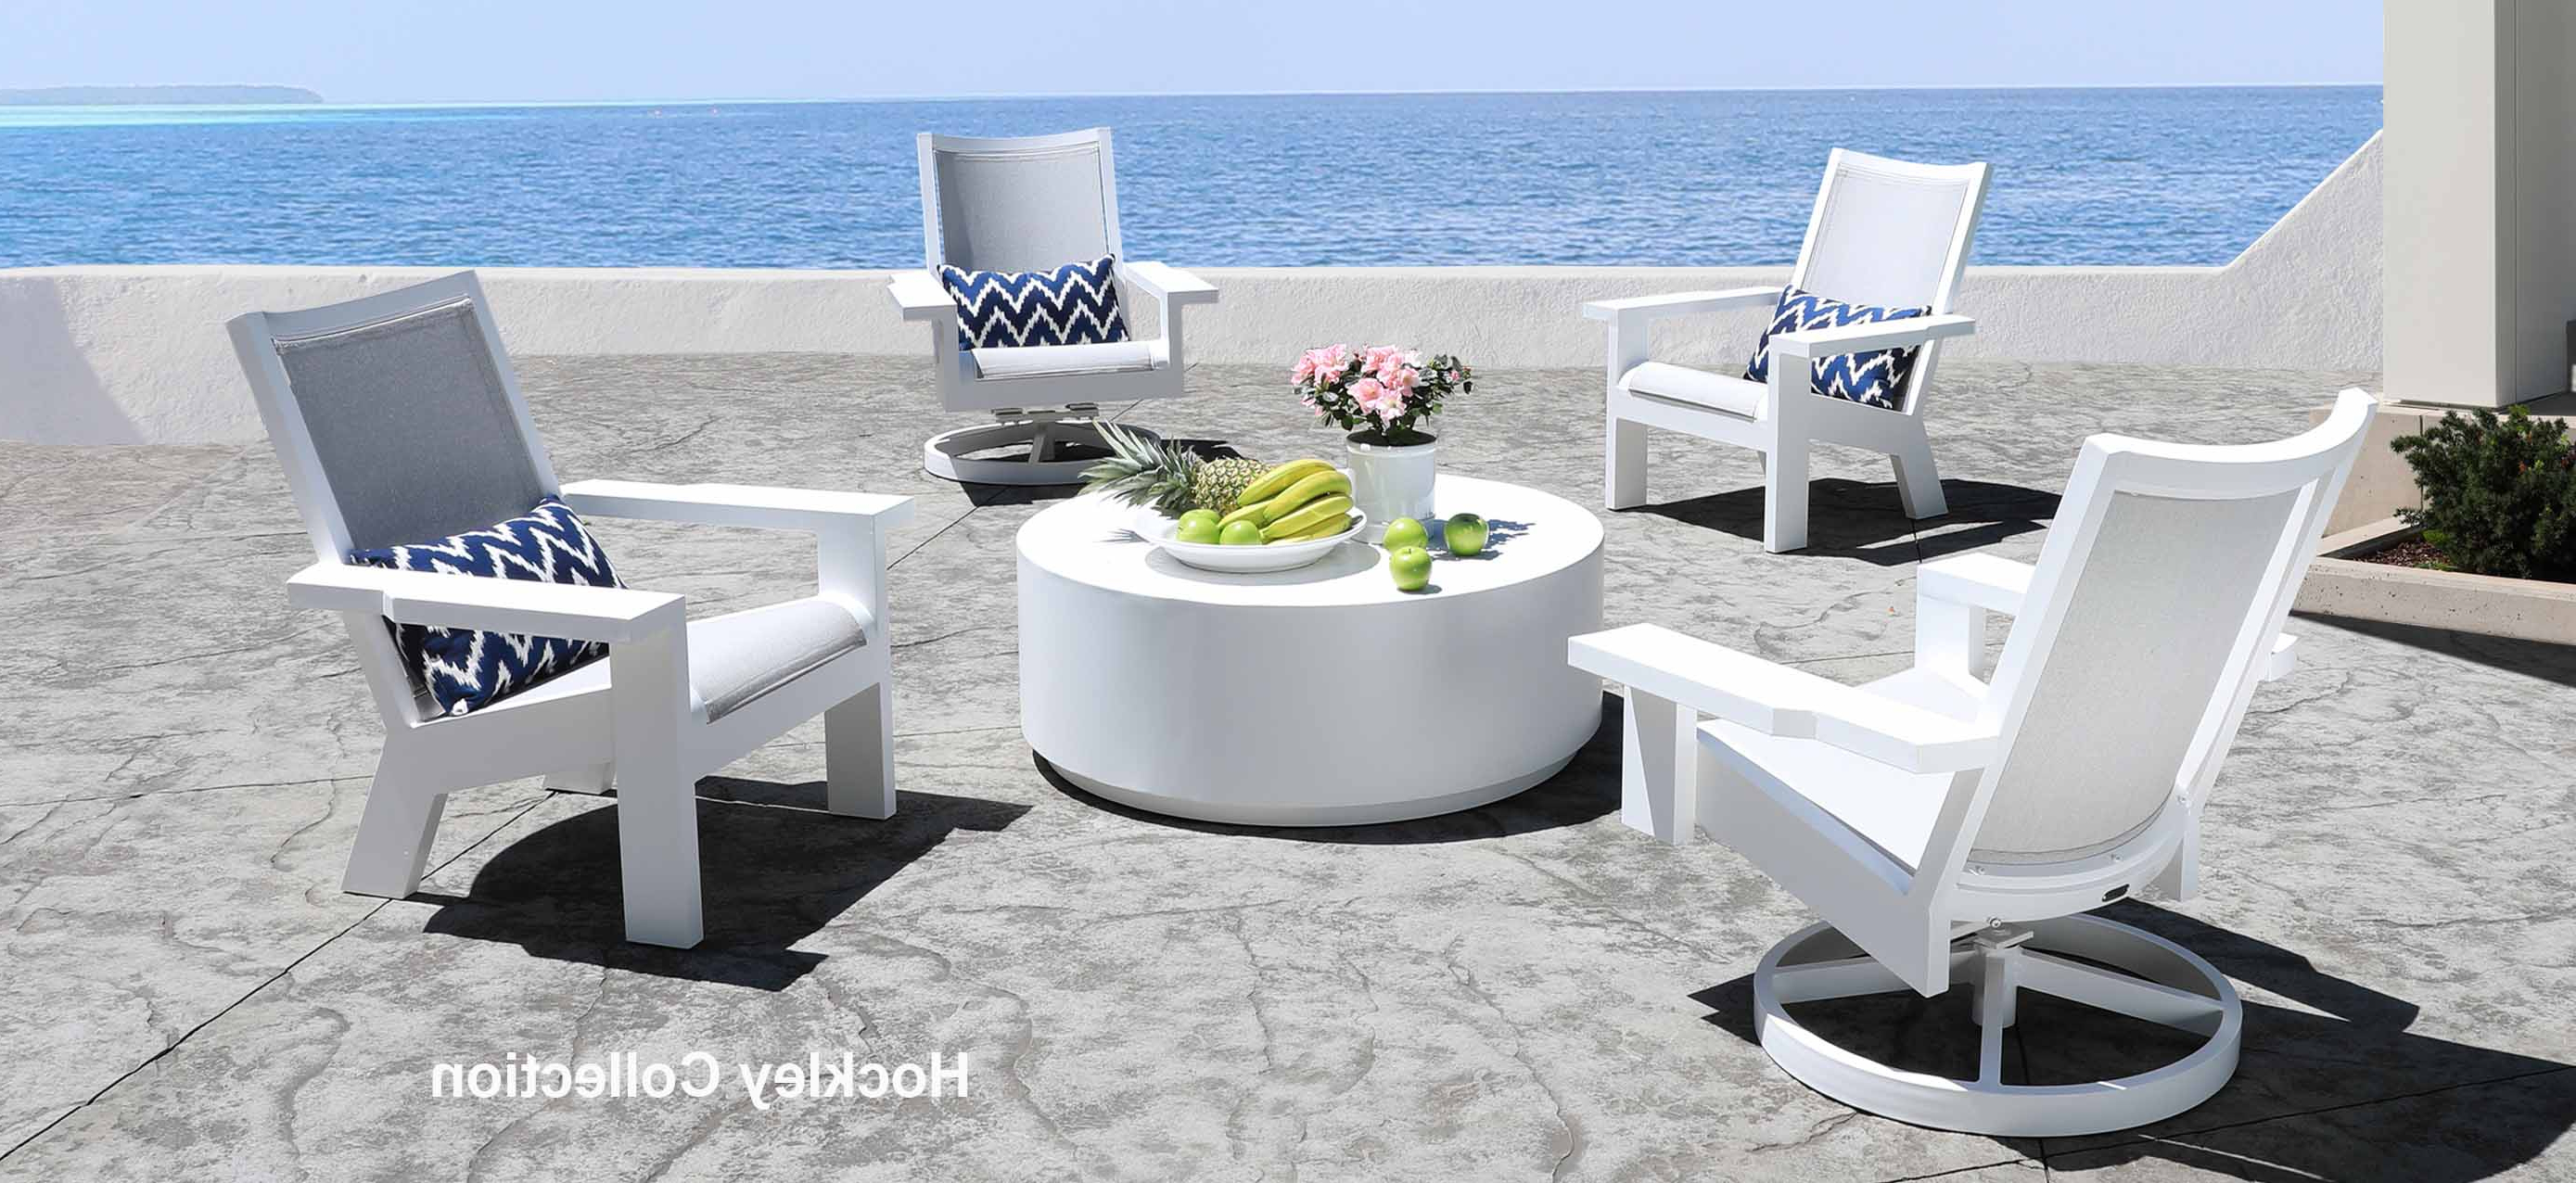 Trendy Indoor Outdoor Textured Bright Chaise Lounges With Sunbrella Fabric With Shop Patio Furniture At Cabanacoast® (View 24 of 25)